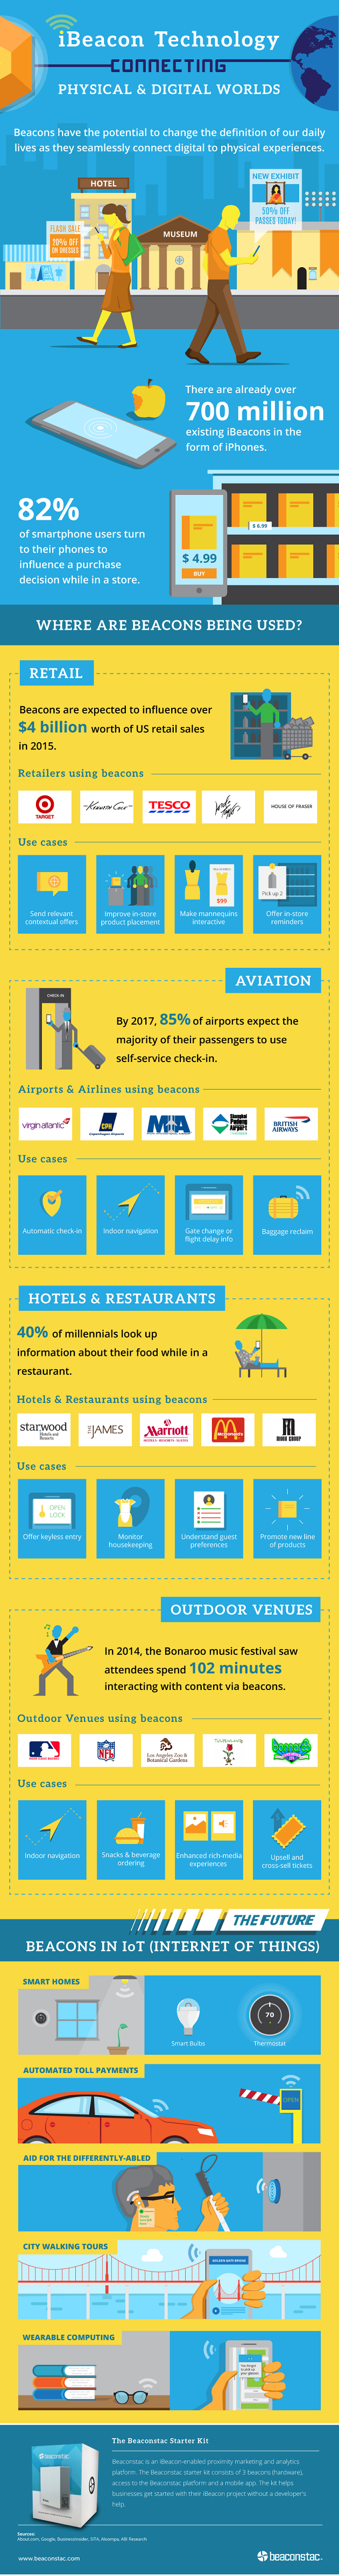 630 Infographic beaconstac - iBeacon Technology – Connecting physical and digital worlds